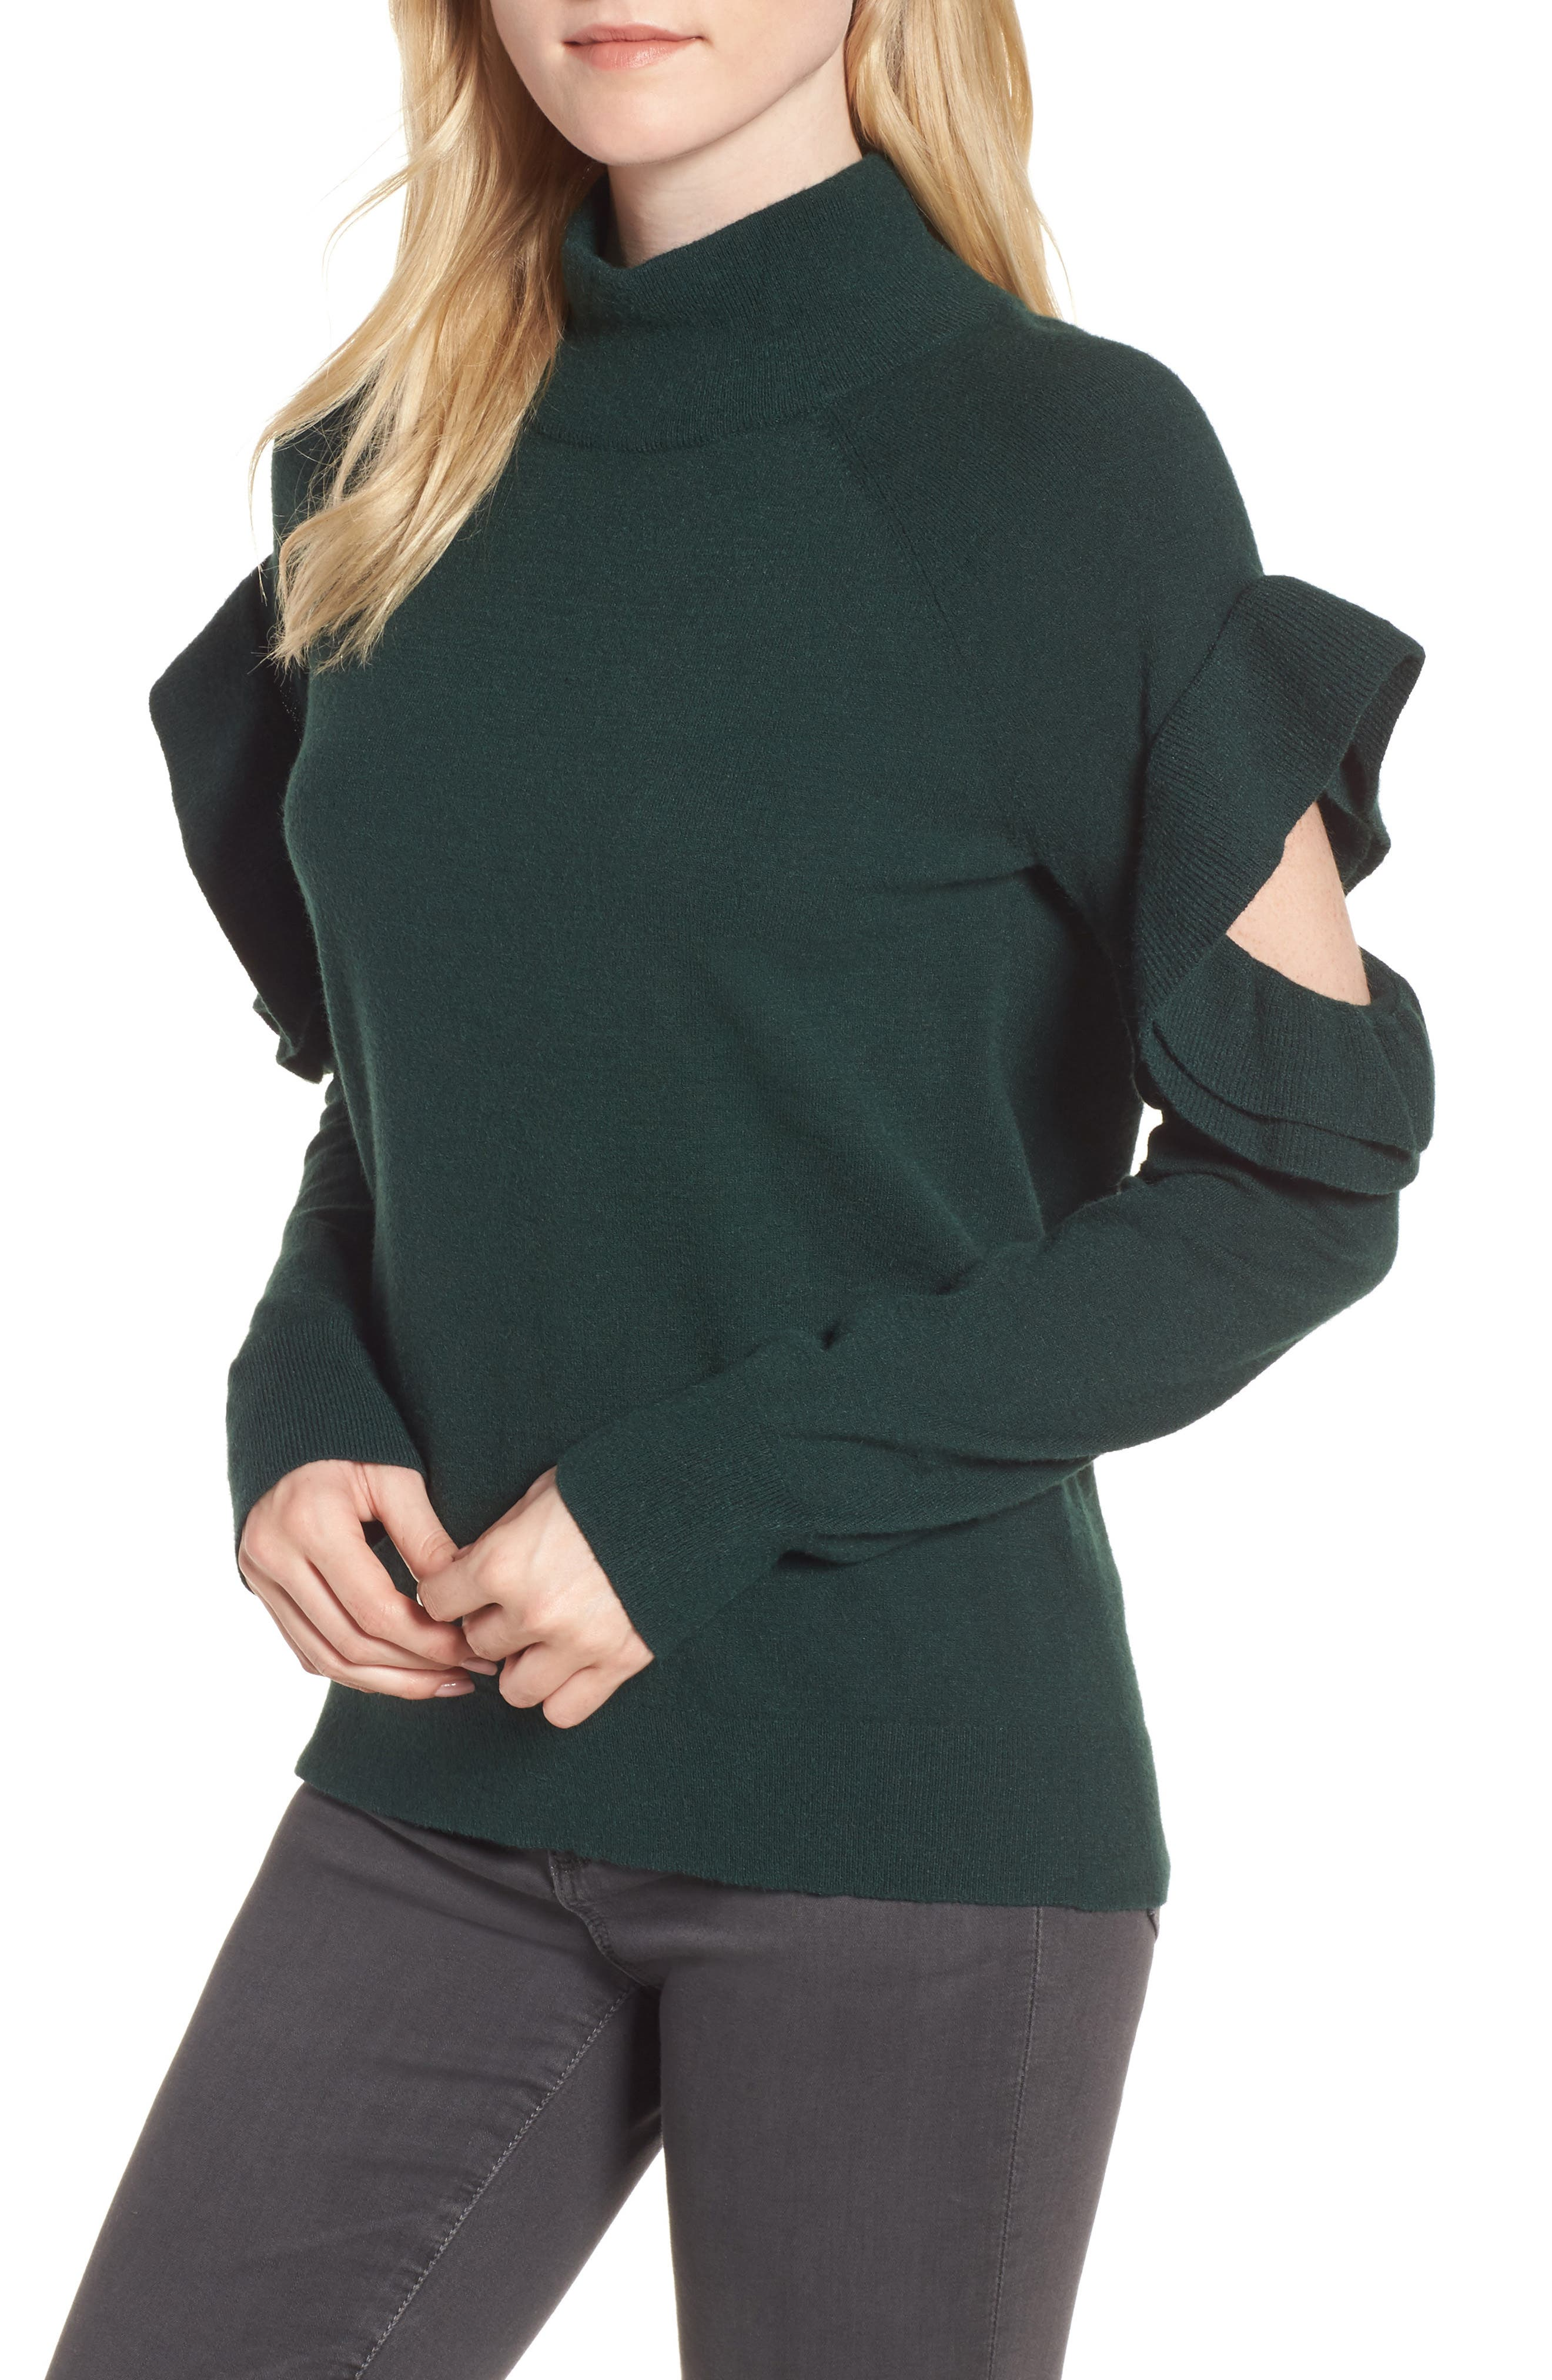 Main Image - Chelsea28 Ruffle Sleeve Sweater